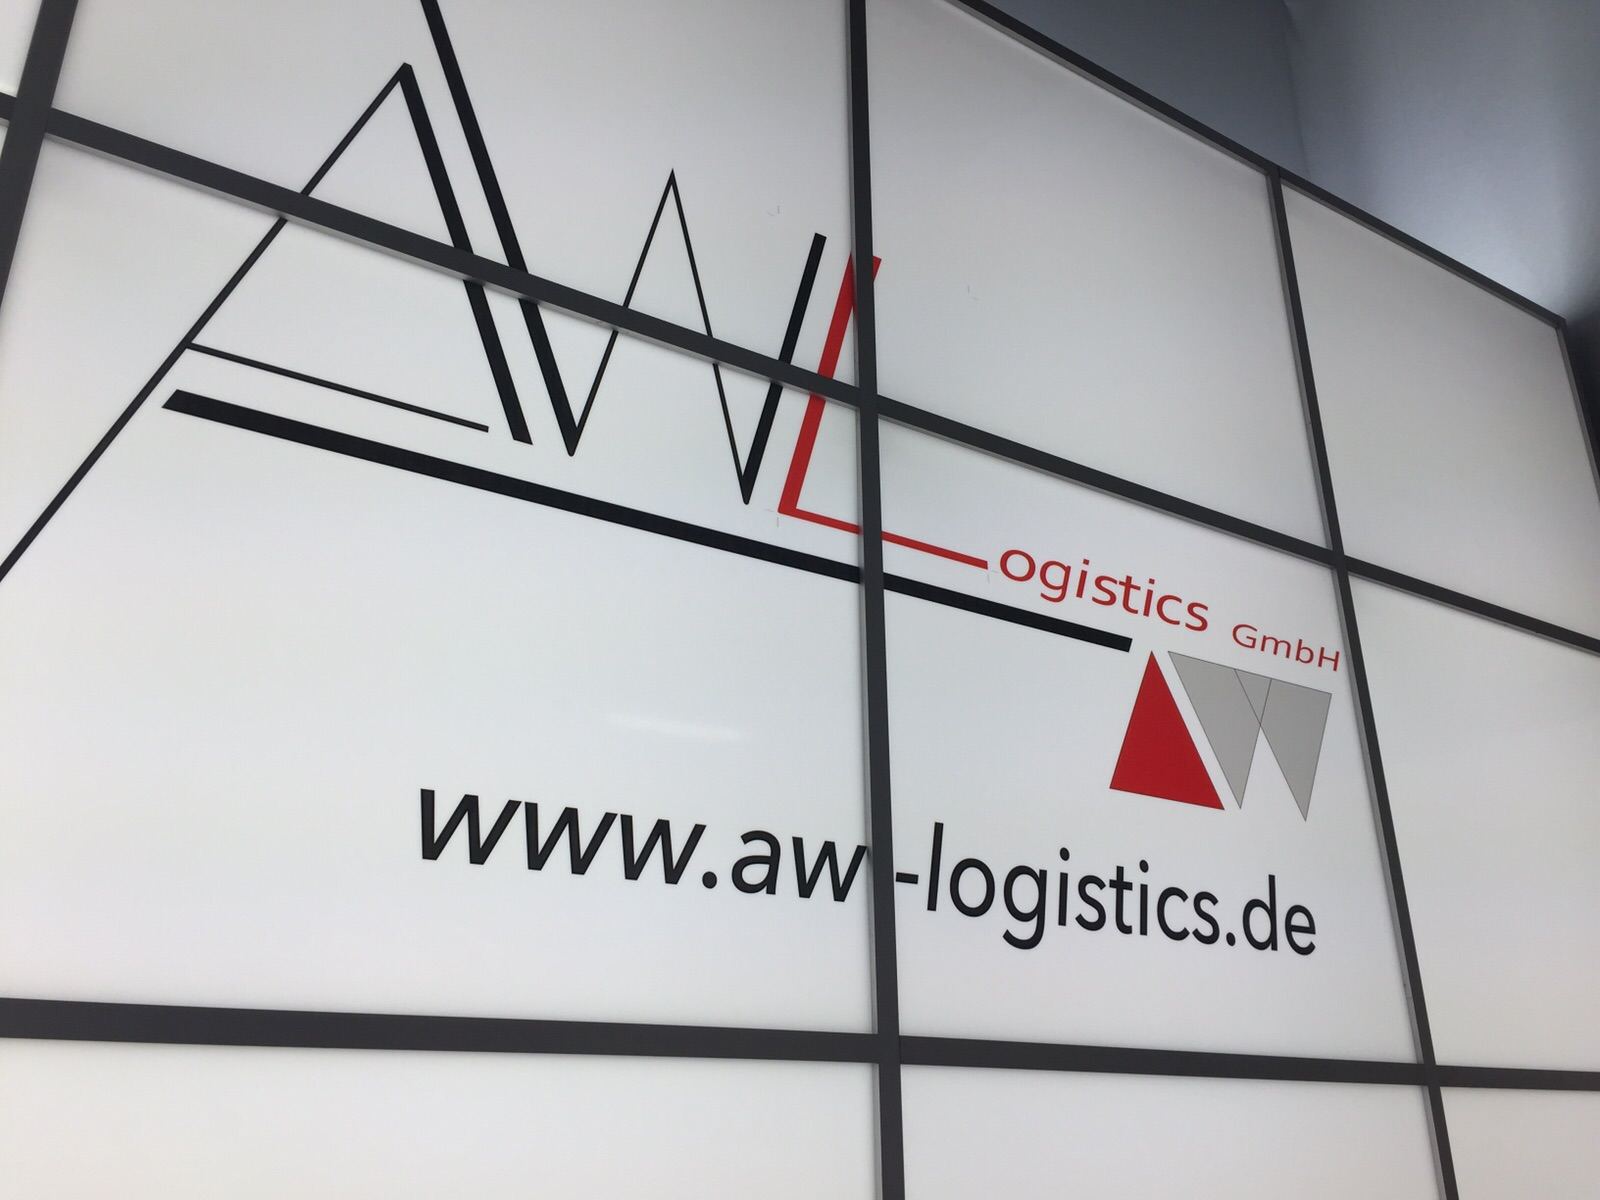 AW Logistics GmbH Exhibition